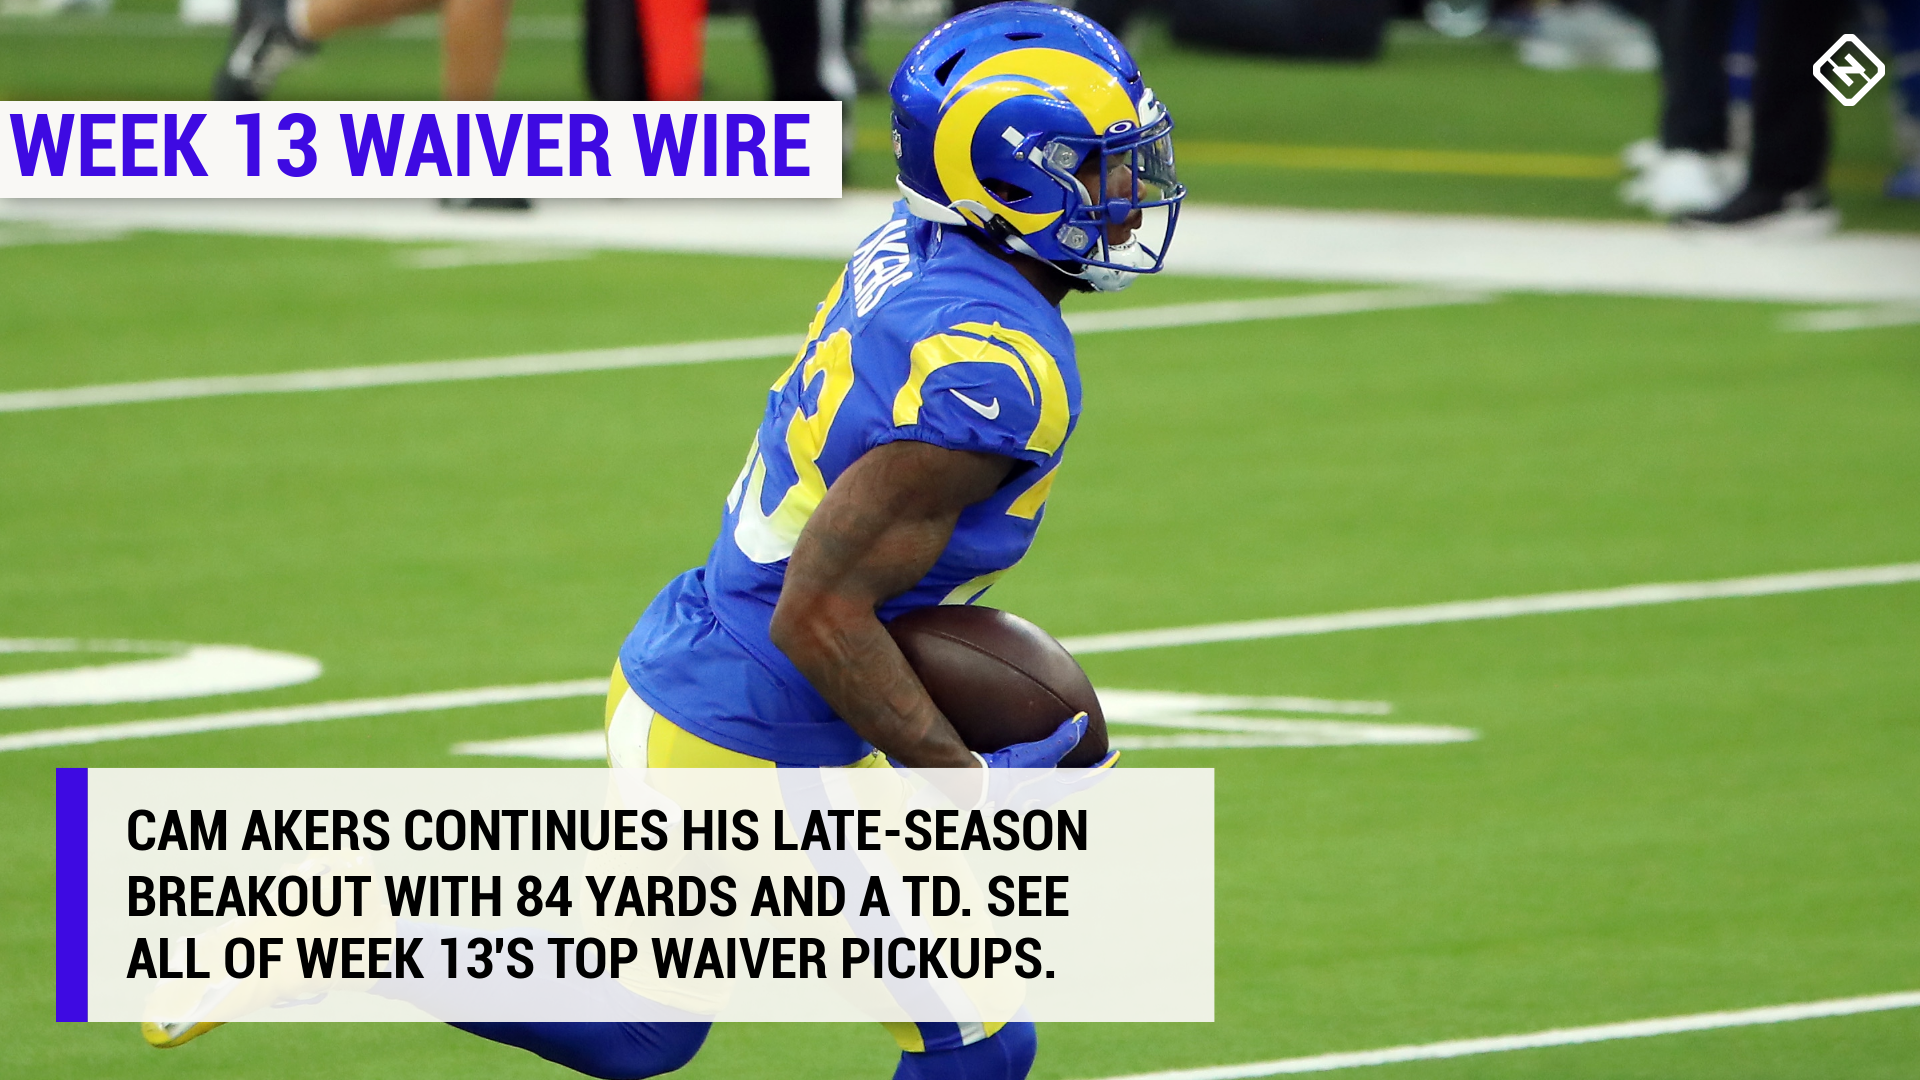 Best fantasy football waiver wire pickups for Week 13 1